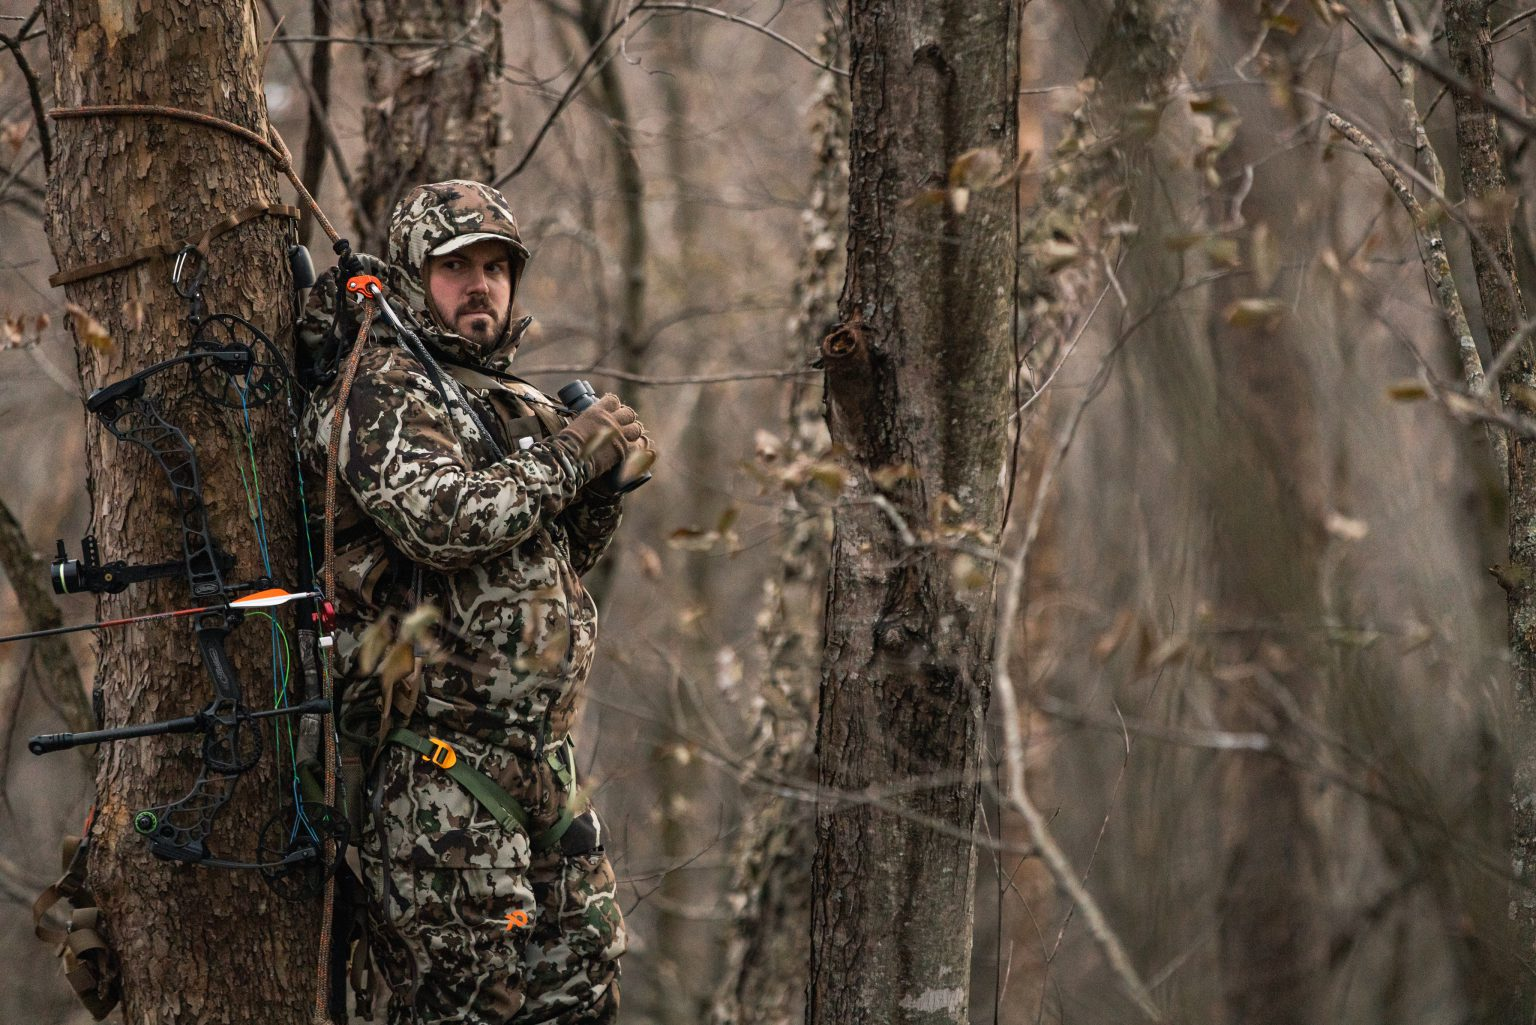 'Urban Sportsman': Bringing bowhunting to the city, one whitetail at a time